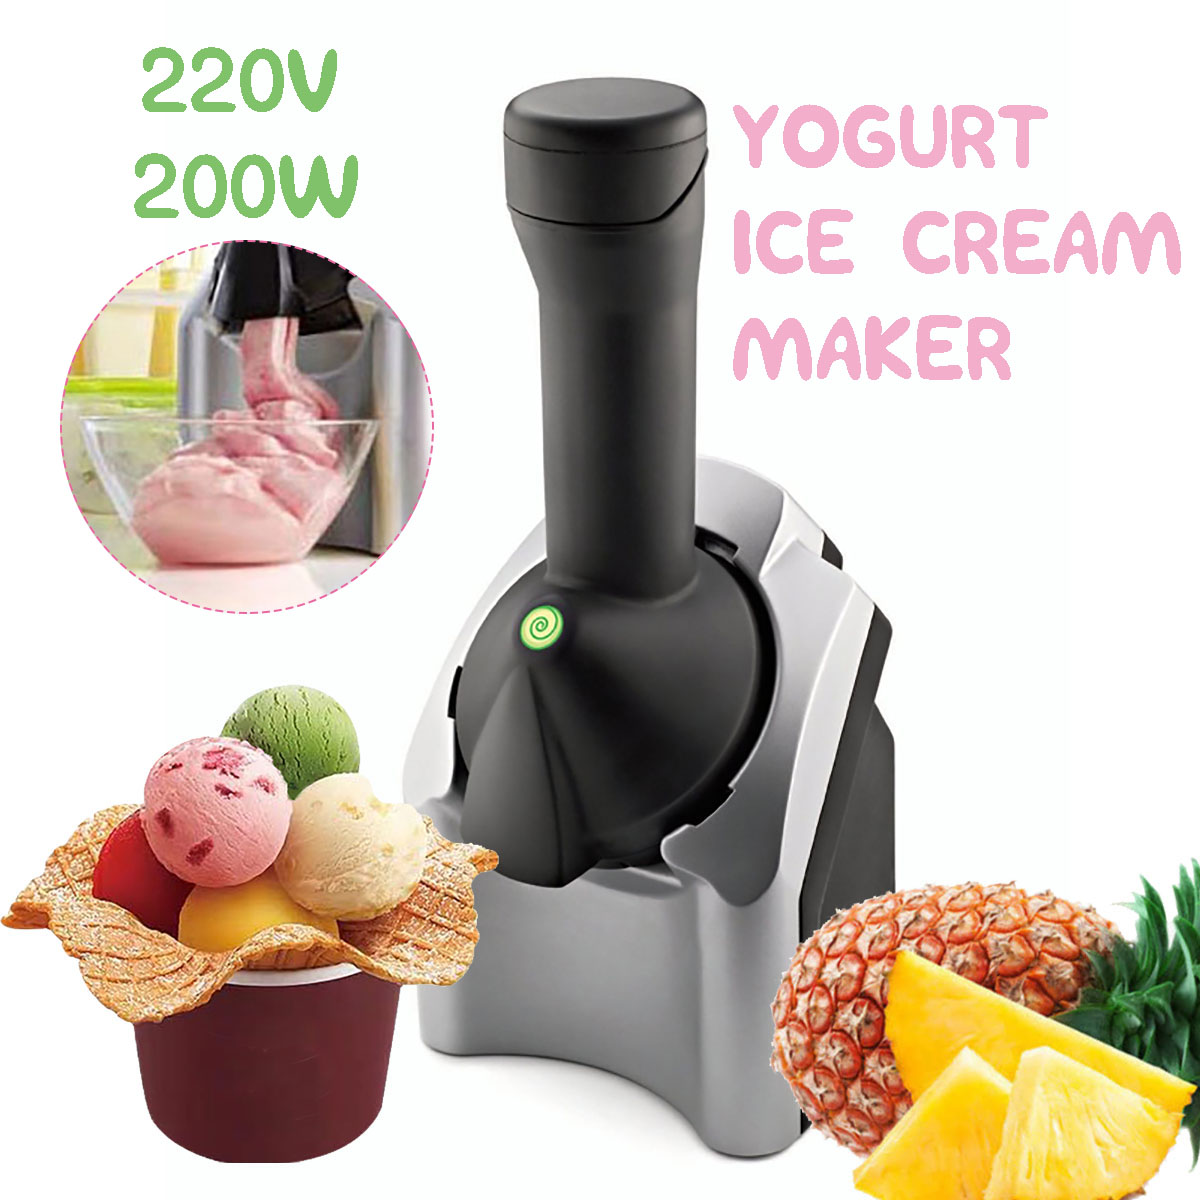 220v 220W DIY Ice Cream Maker Machine Portable Size Household Use Automatic Frozen Fruit Dessert Machine